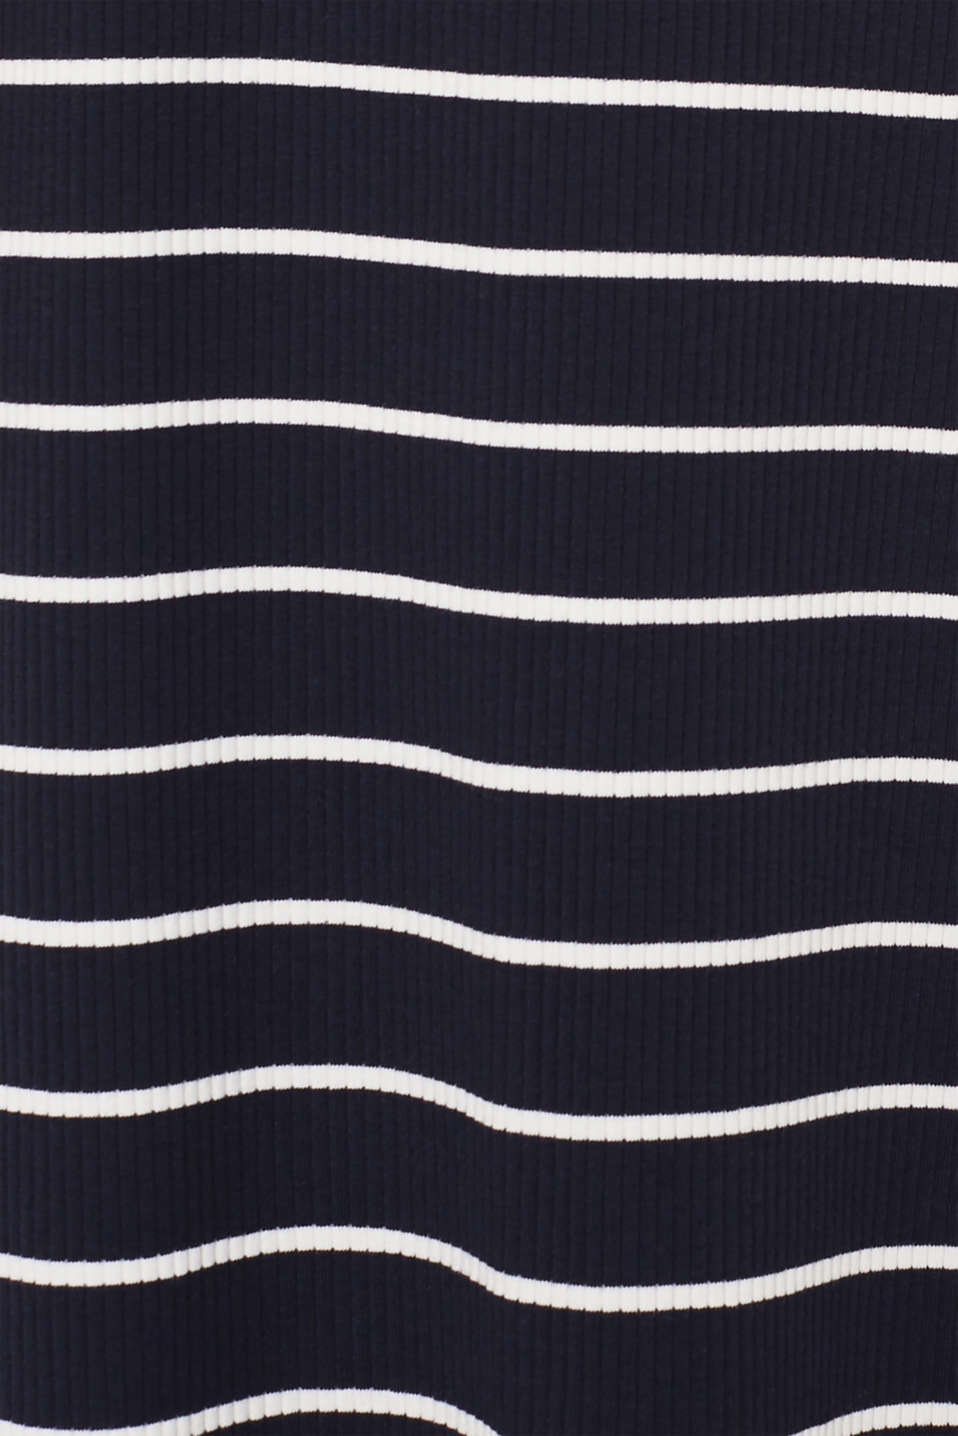 Stretch jersey dress with stripes and texture, NAVY, detail image number 4